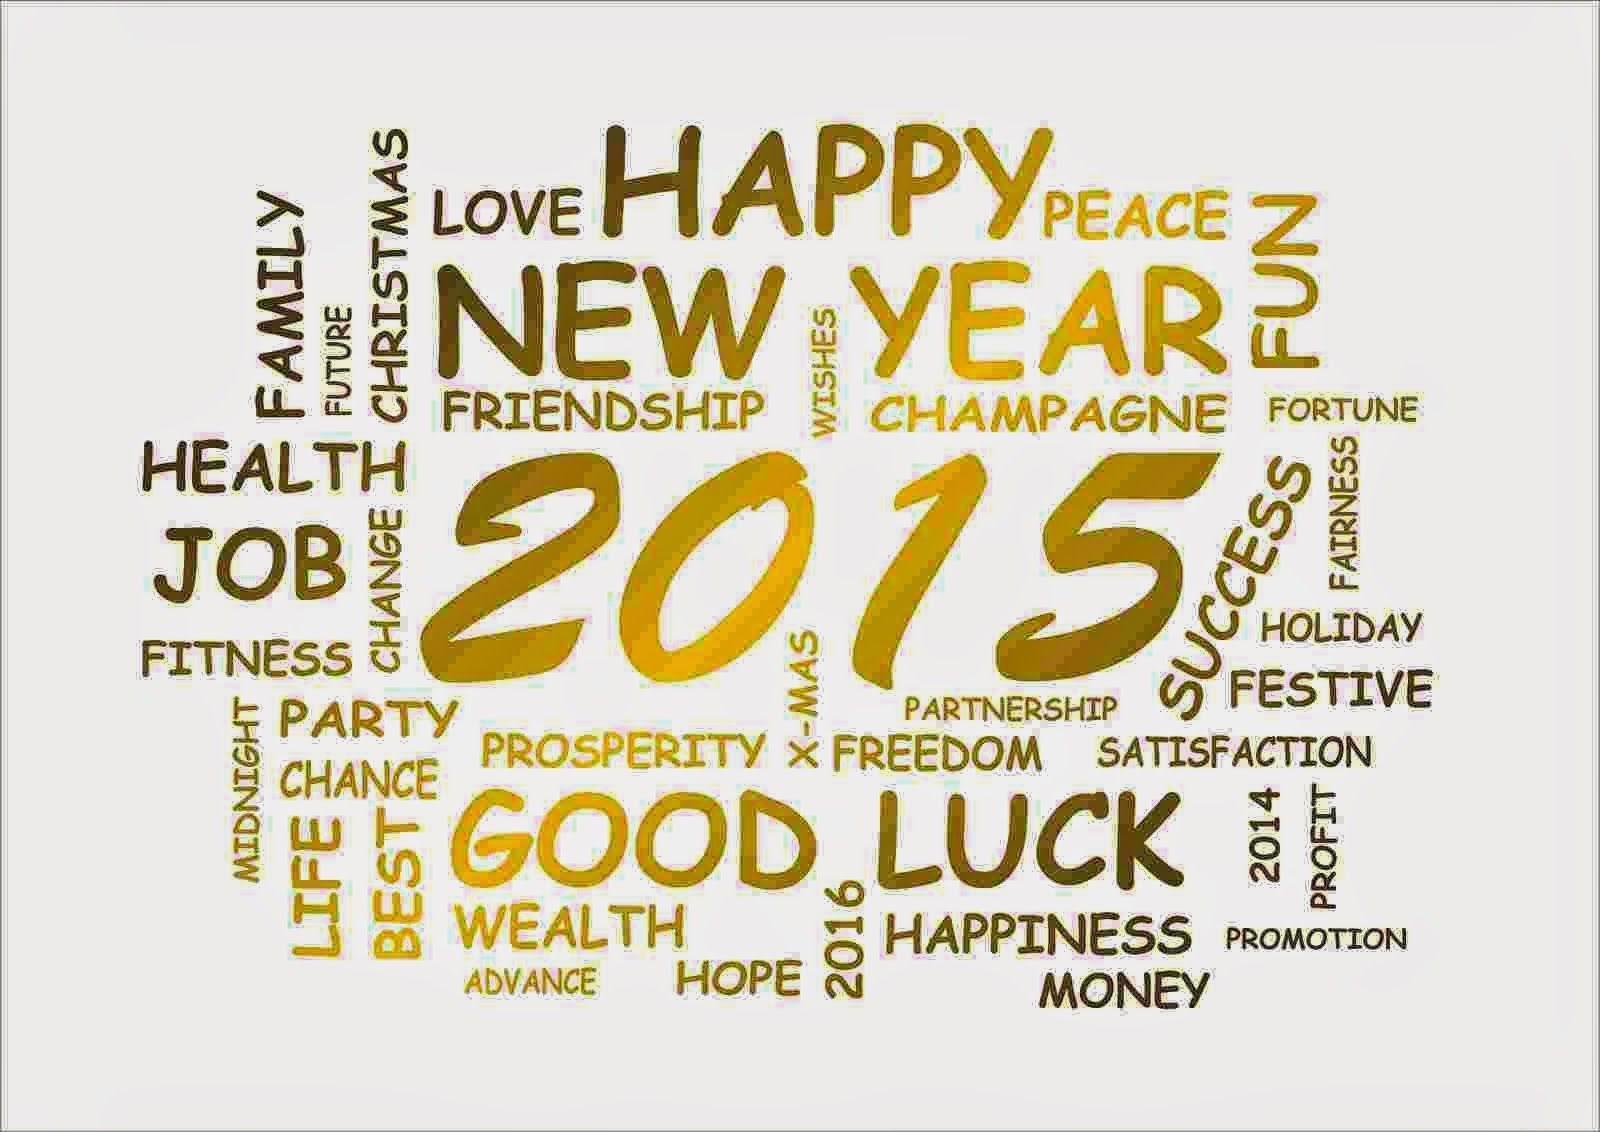 Happy New Year 2015 Wishes Messages Greeting Cards Images Funny